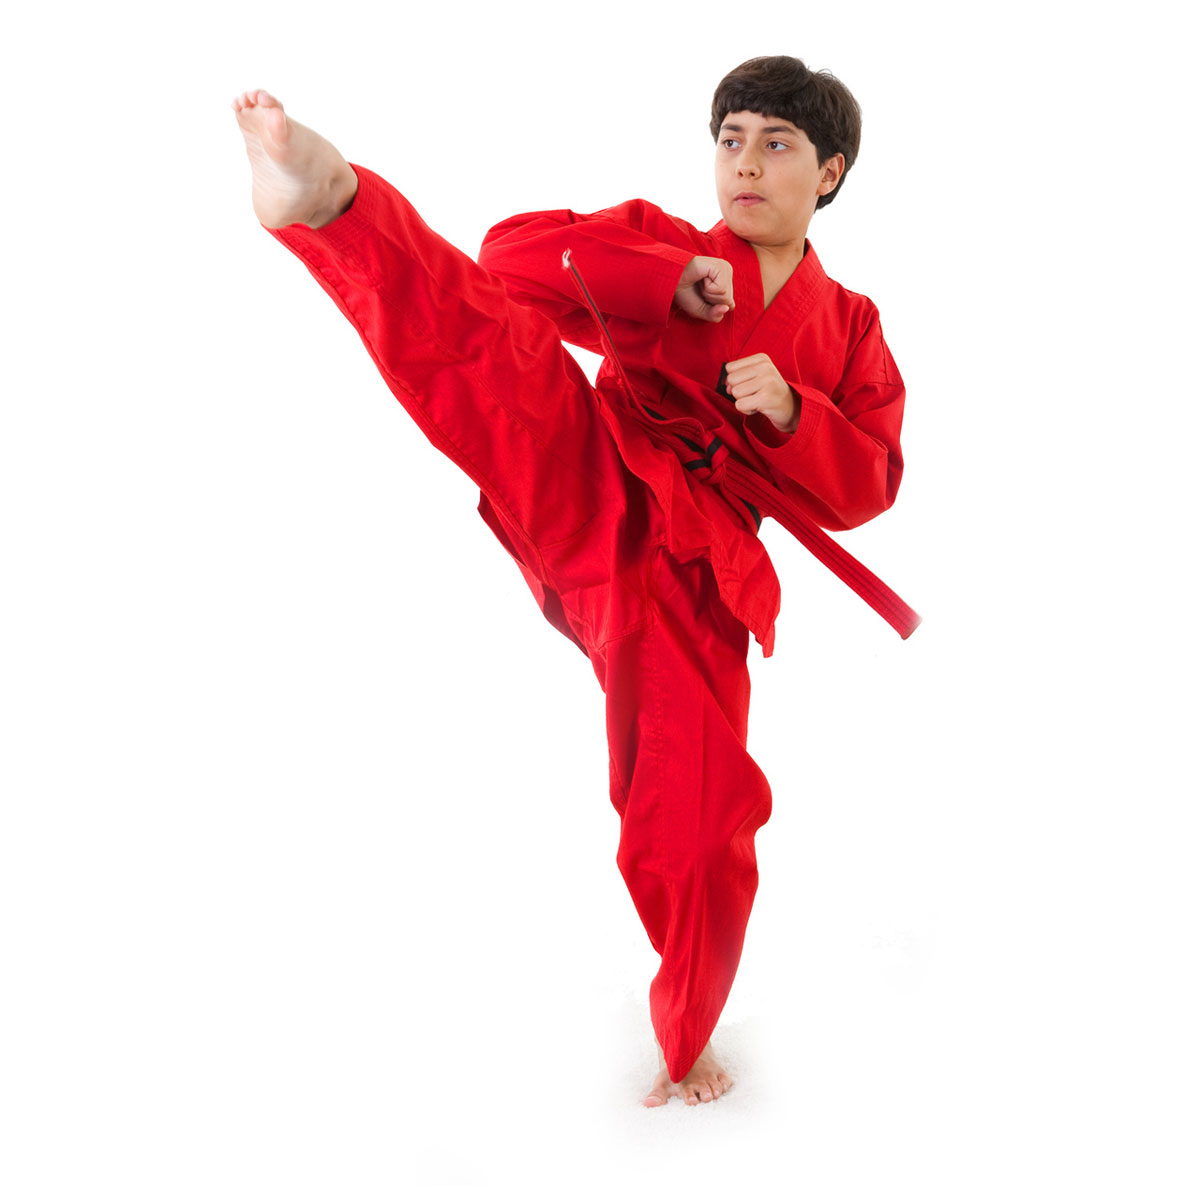 MACHO KARATE V-NECK MIDDLEWEIGHT UNIFORM RED on sale only $26 20